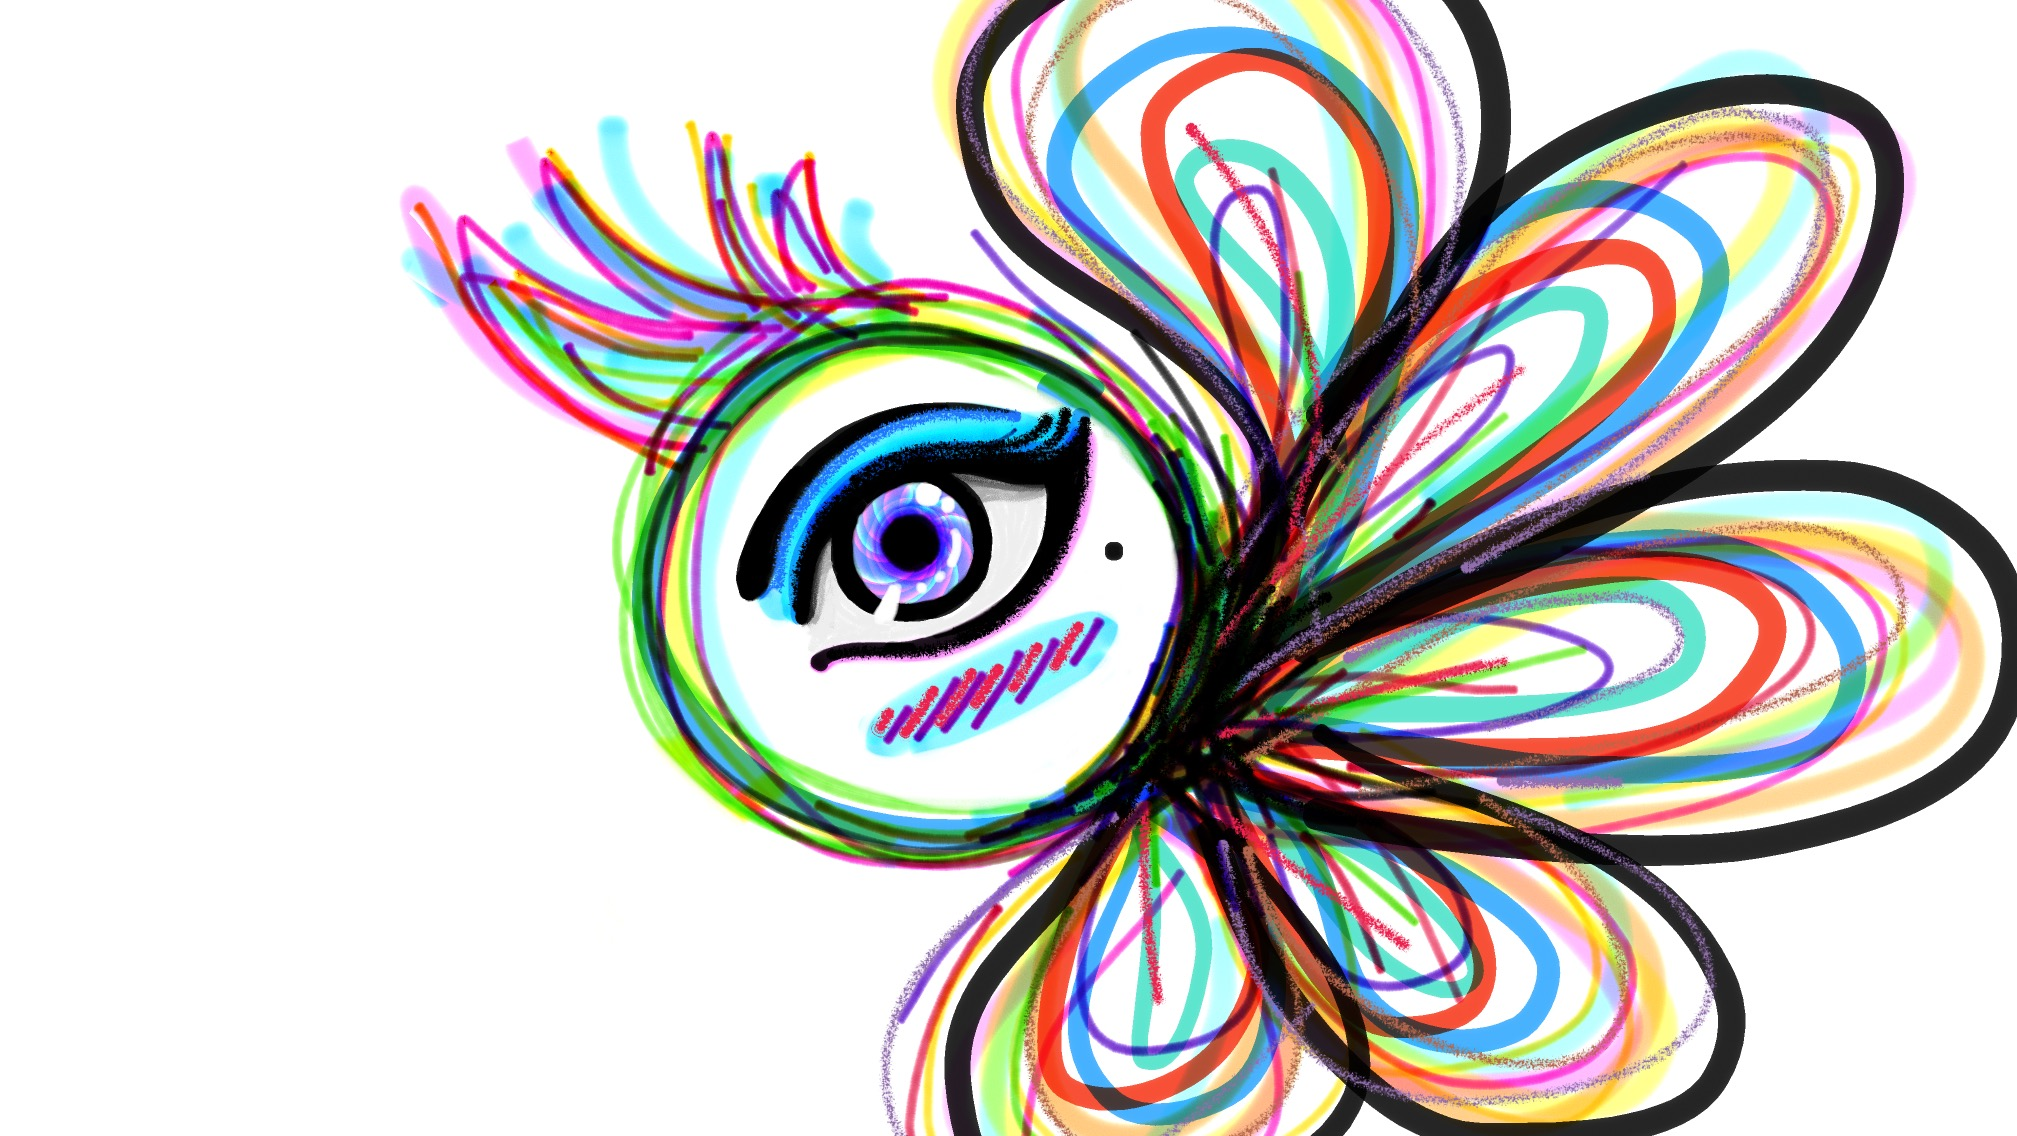 The great colorful eye